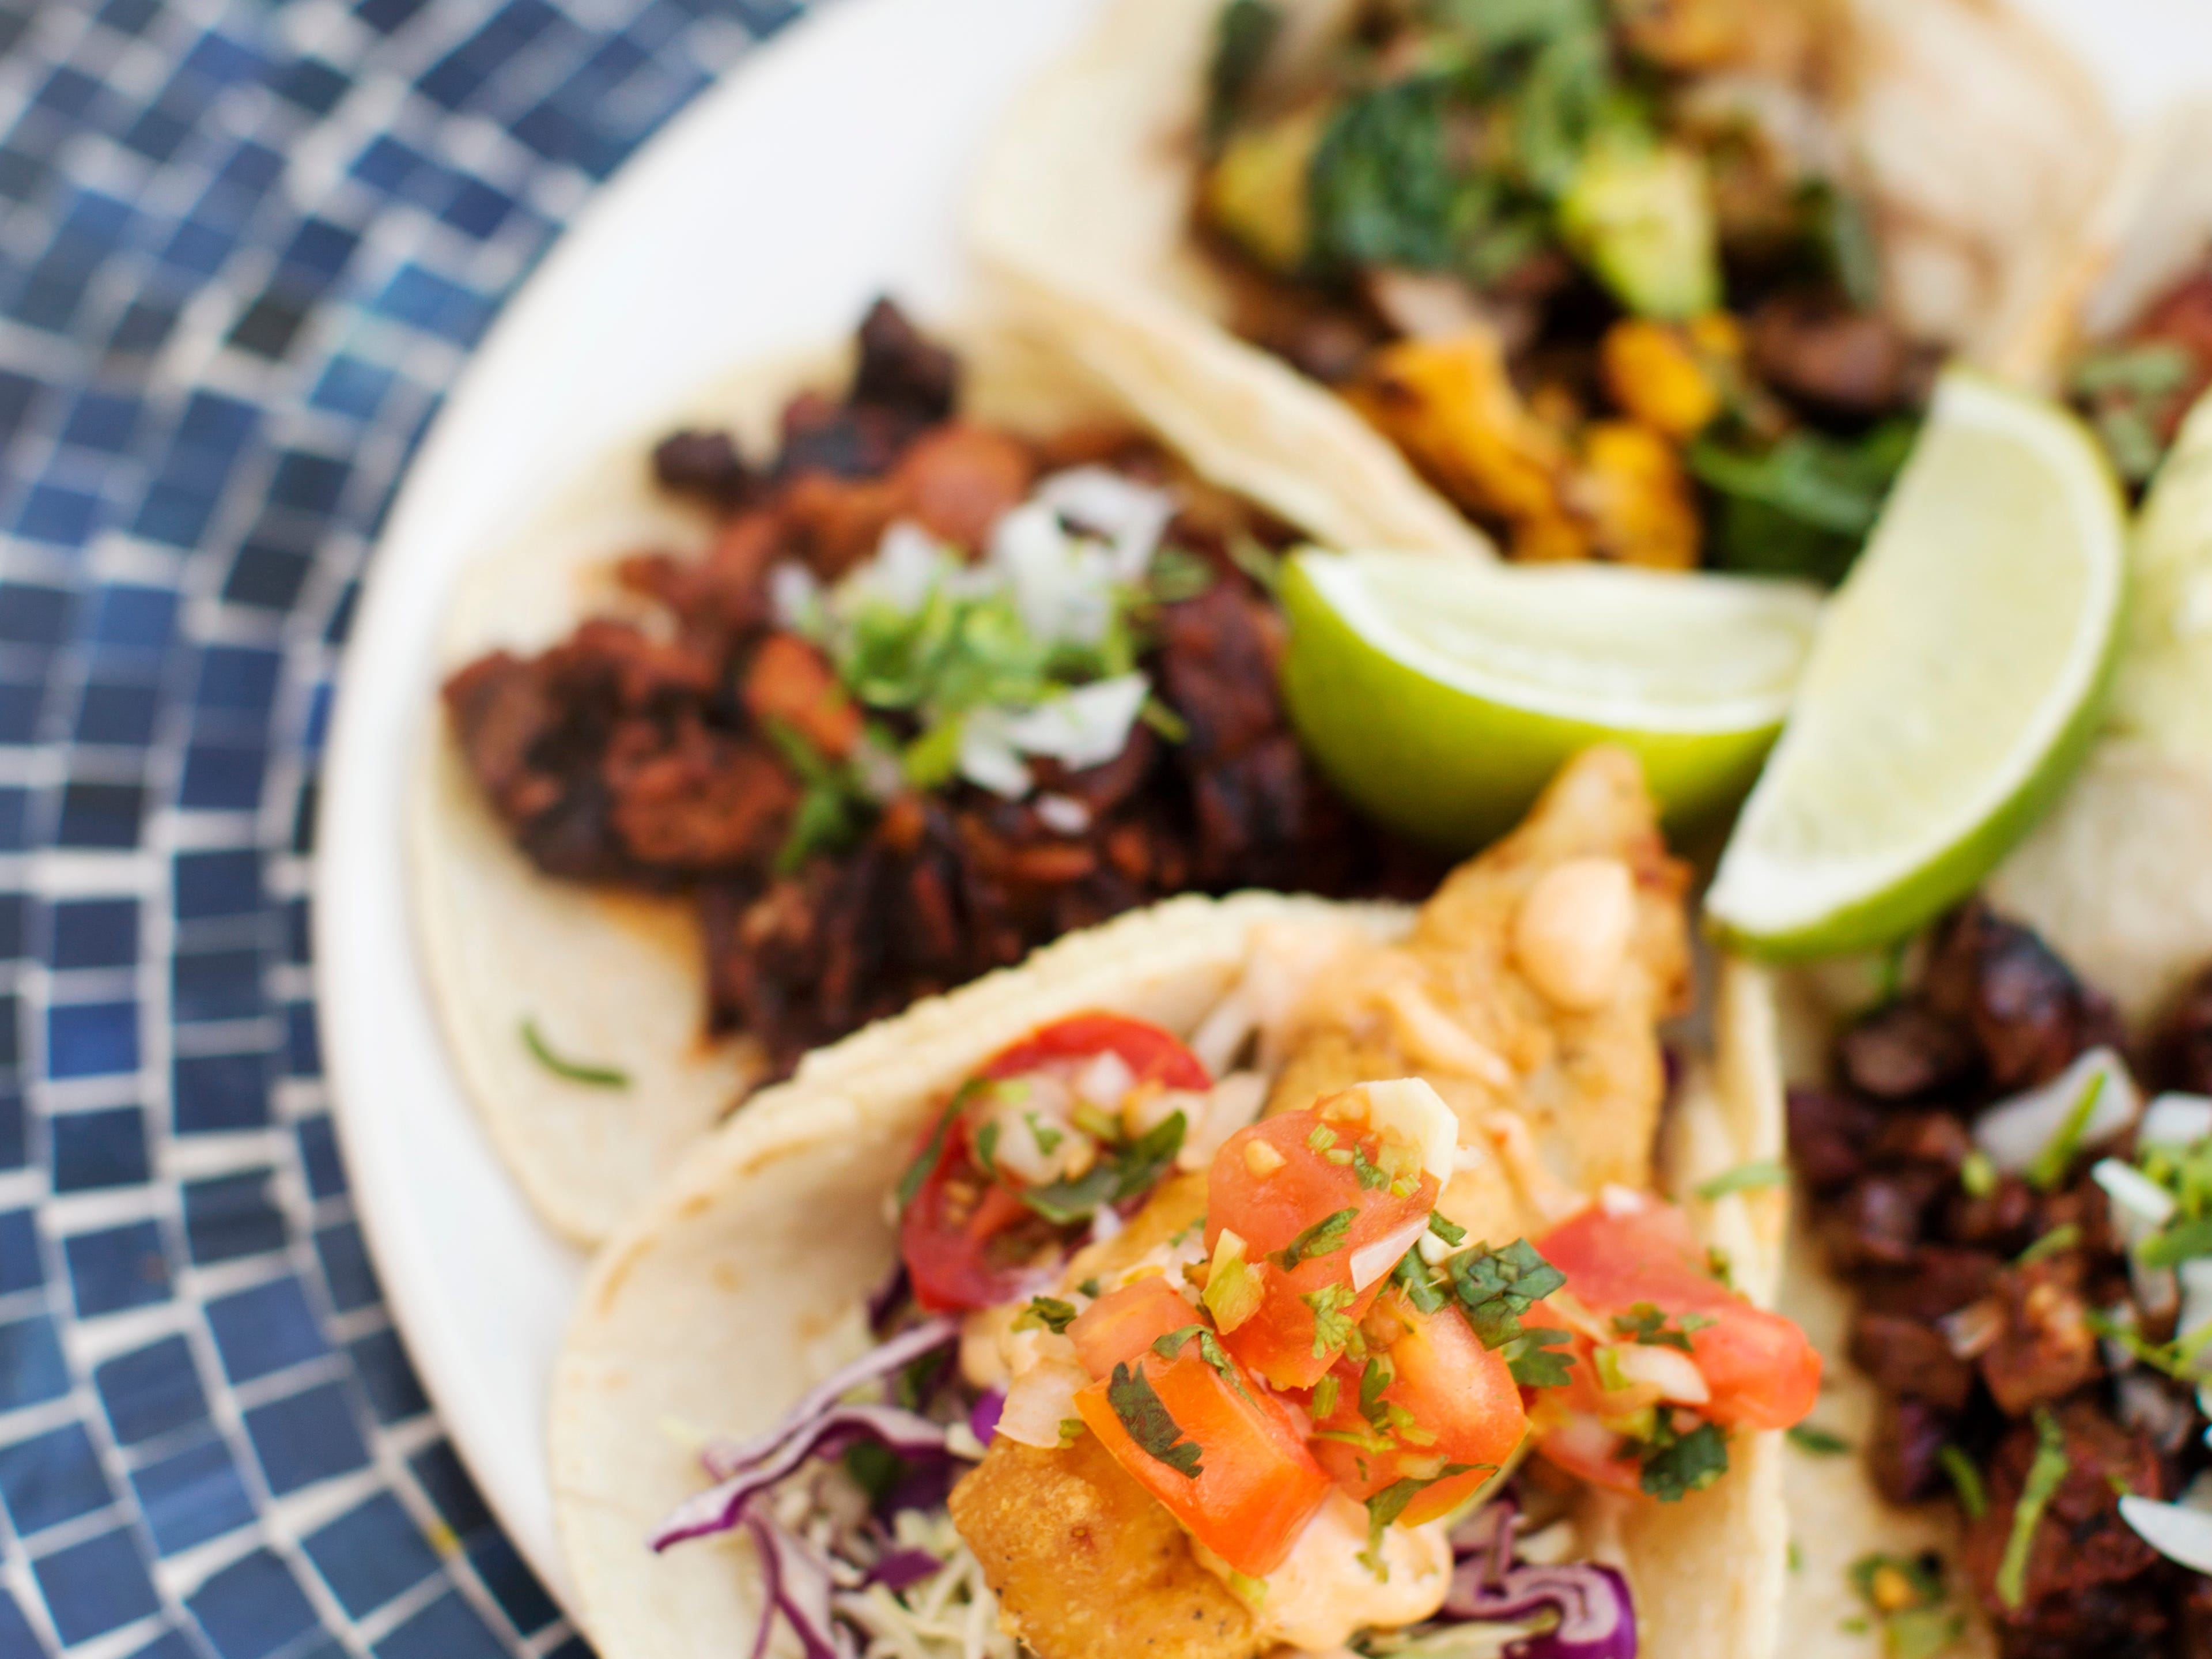 The 9 best places in metro Phoenix to celebrate National Taco Day